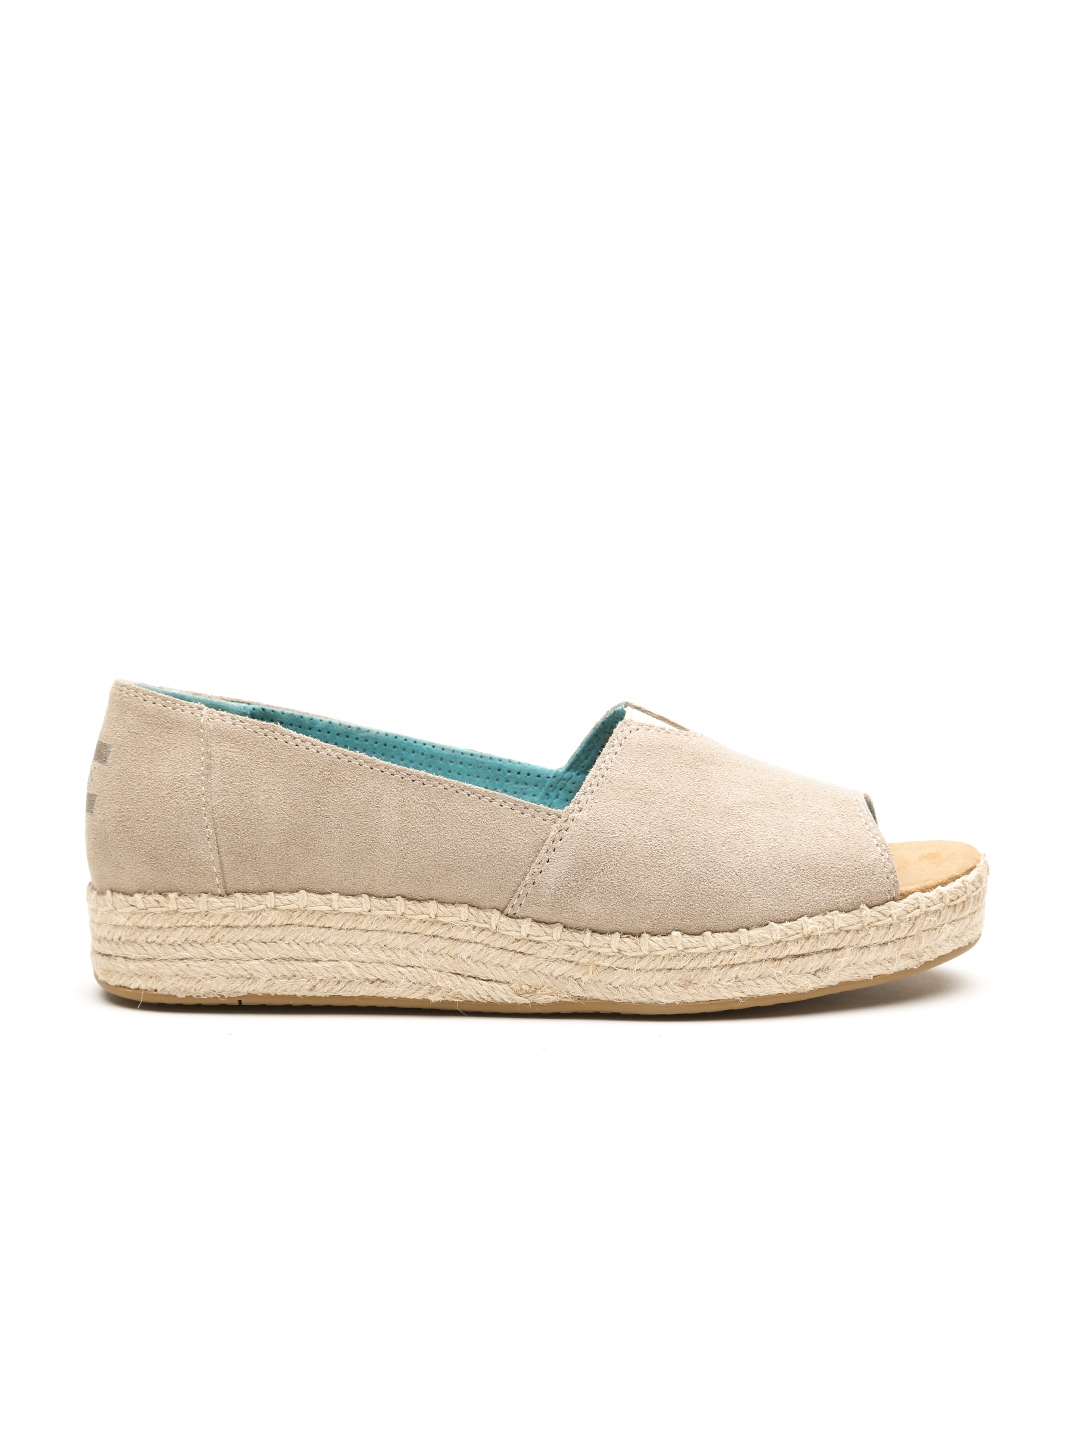 68f2f4419c6 Buy TOMS Women Taupe Suede Peep Toed Espadrilles - Casual Shoes for ...